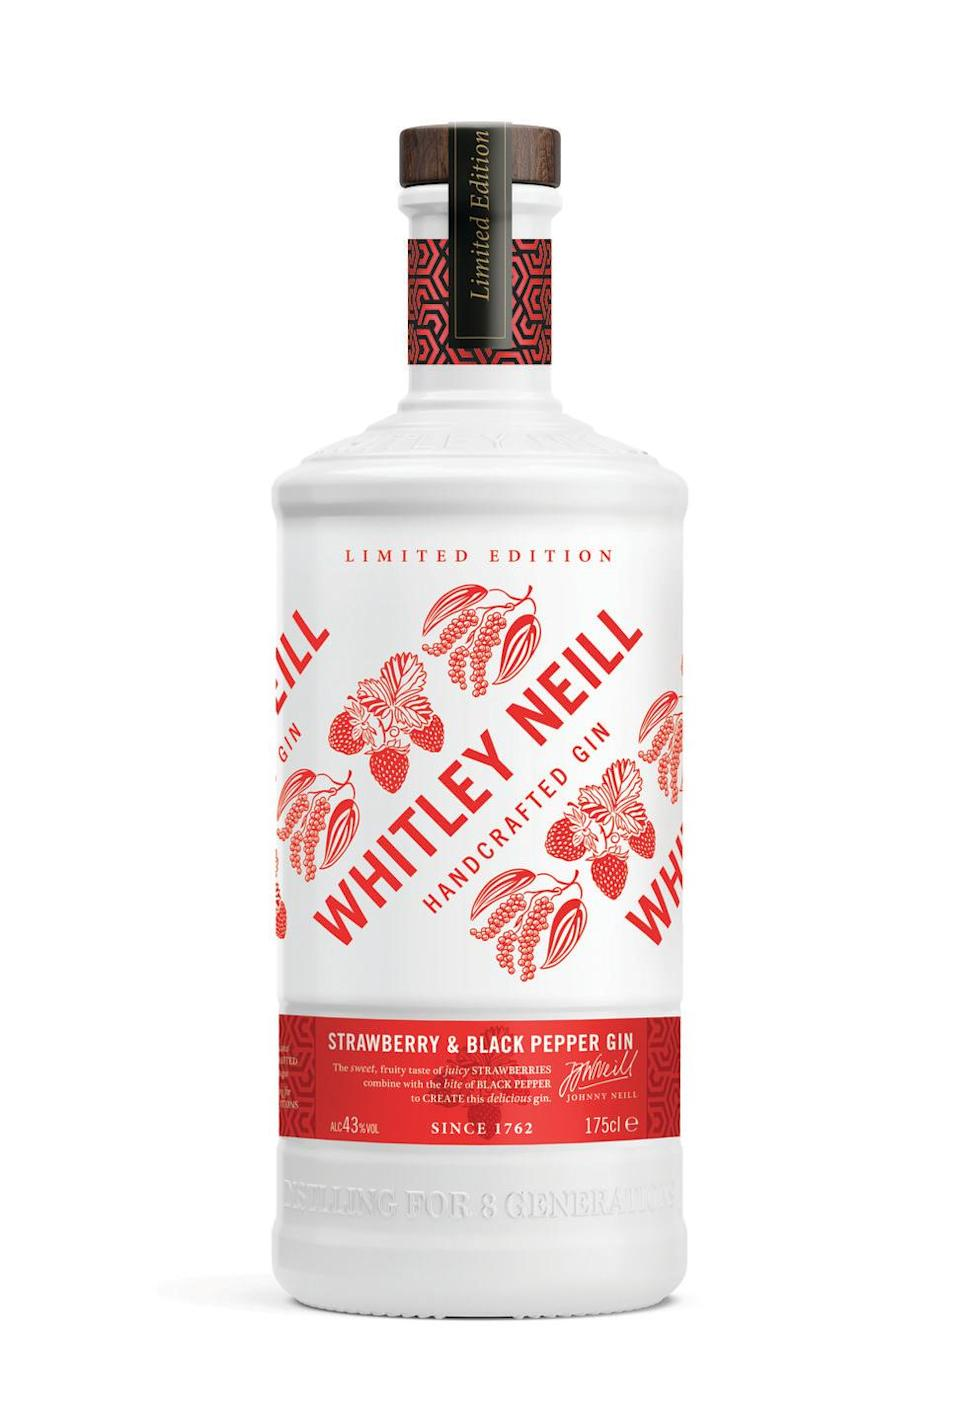 """<p>In this gin, you get a sweetness from the berries paired with a subtle kick of black pepper, which creates a surprising and absolute winning combination. It's described as the """"ideal garden drink"""" and goes perfectly with a delicious elderflower tonic and garnished with ripe, fresh strawberries.</p><p><strong>The Bottle Club, £24.49</strong></p><p><a class=""""link rapid-noclick-resp"""" href=""""https://go.redirectingat.com?id=127X1599956&url=https%3A%2F%2Fwww.thebottleclub.com%2Fpages%2Fwhitleyneill&sref=https%3A%2F%2Fwww.delish.com%2Fuk%2Fcocktails-drinks%2Fg29069585%2Fflavoured-gin%2F"""" rel=""""nofollow noopener"""" target=""""_blank"""" data-ylk=""""slk:PRE-ORDER NOW"""">PRE-ORDER NOW</a></p>"""